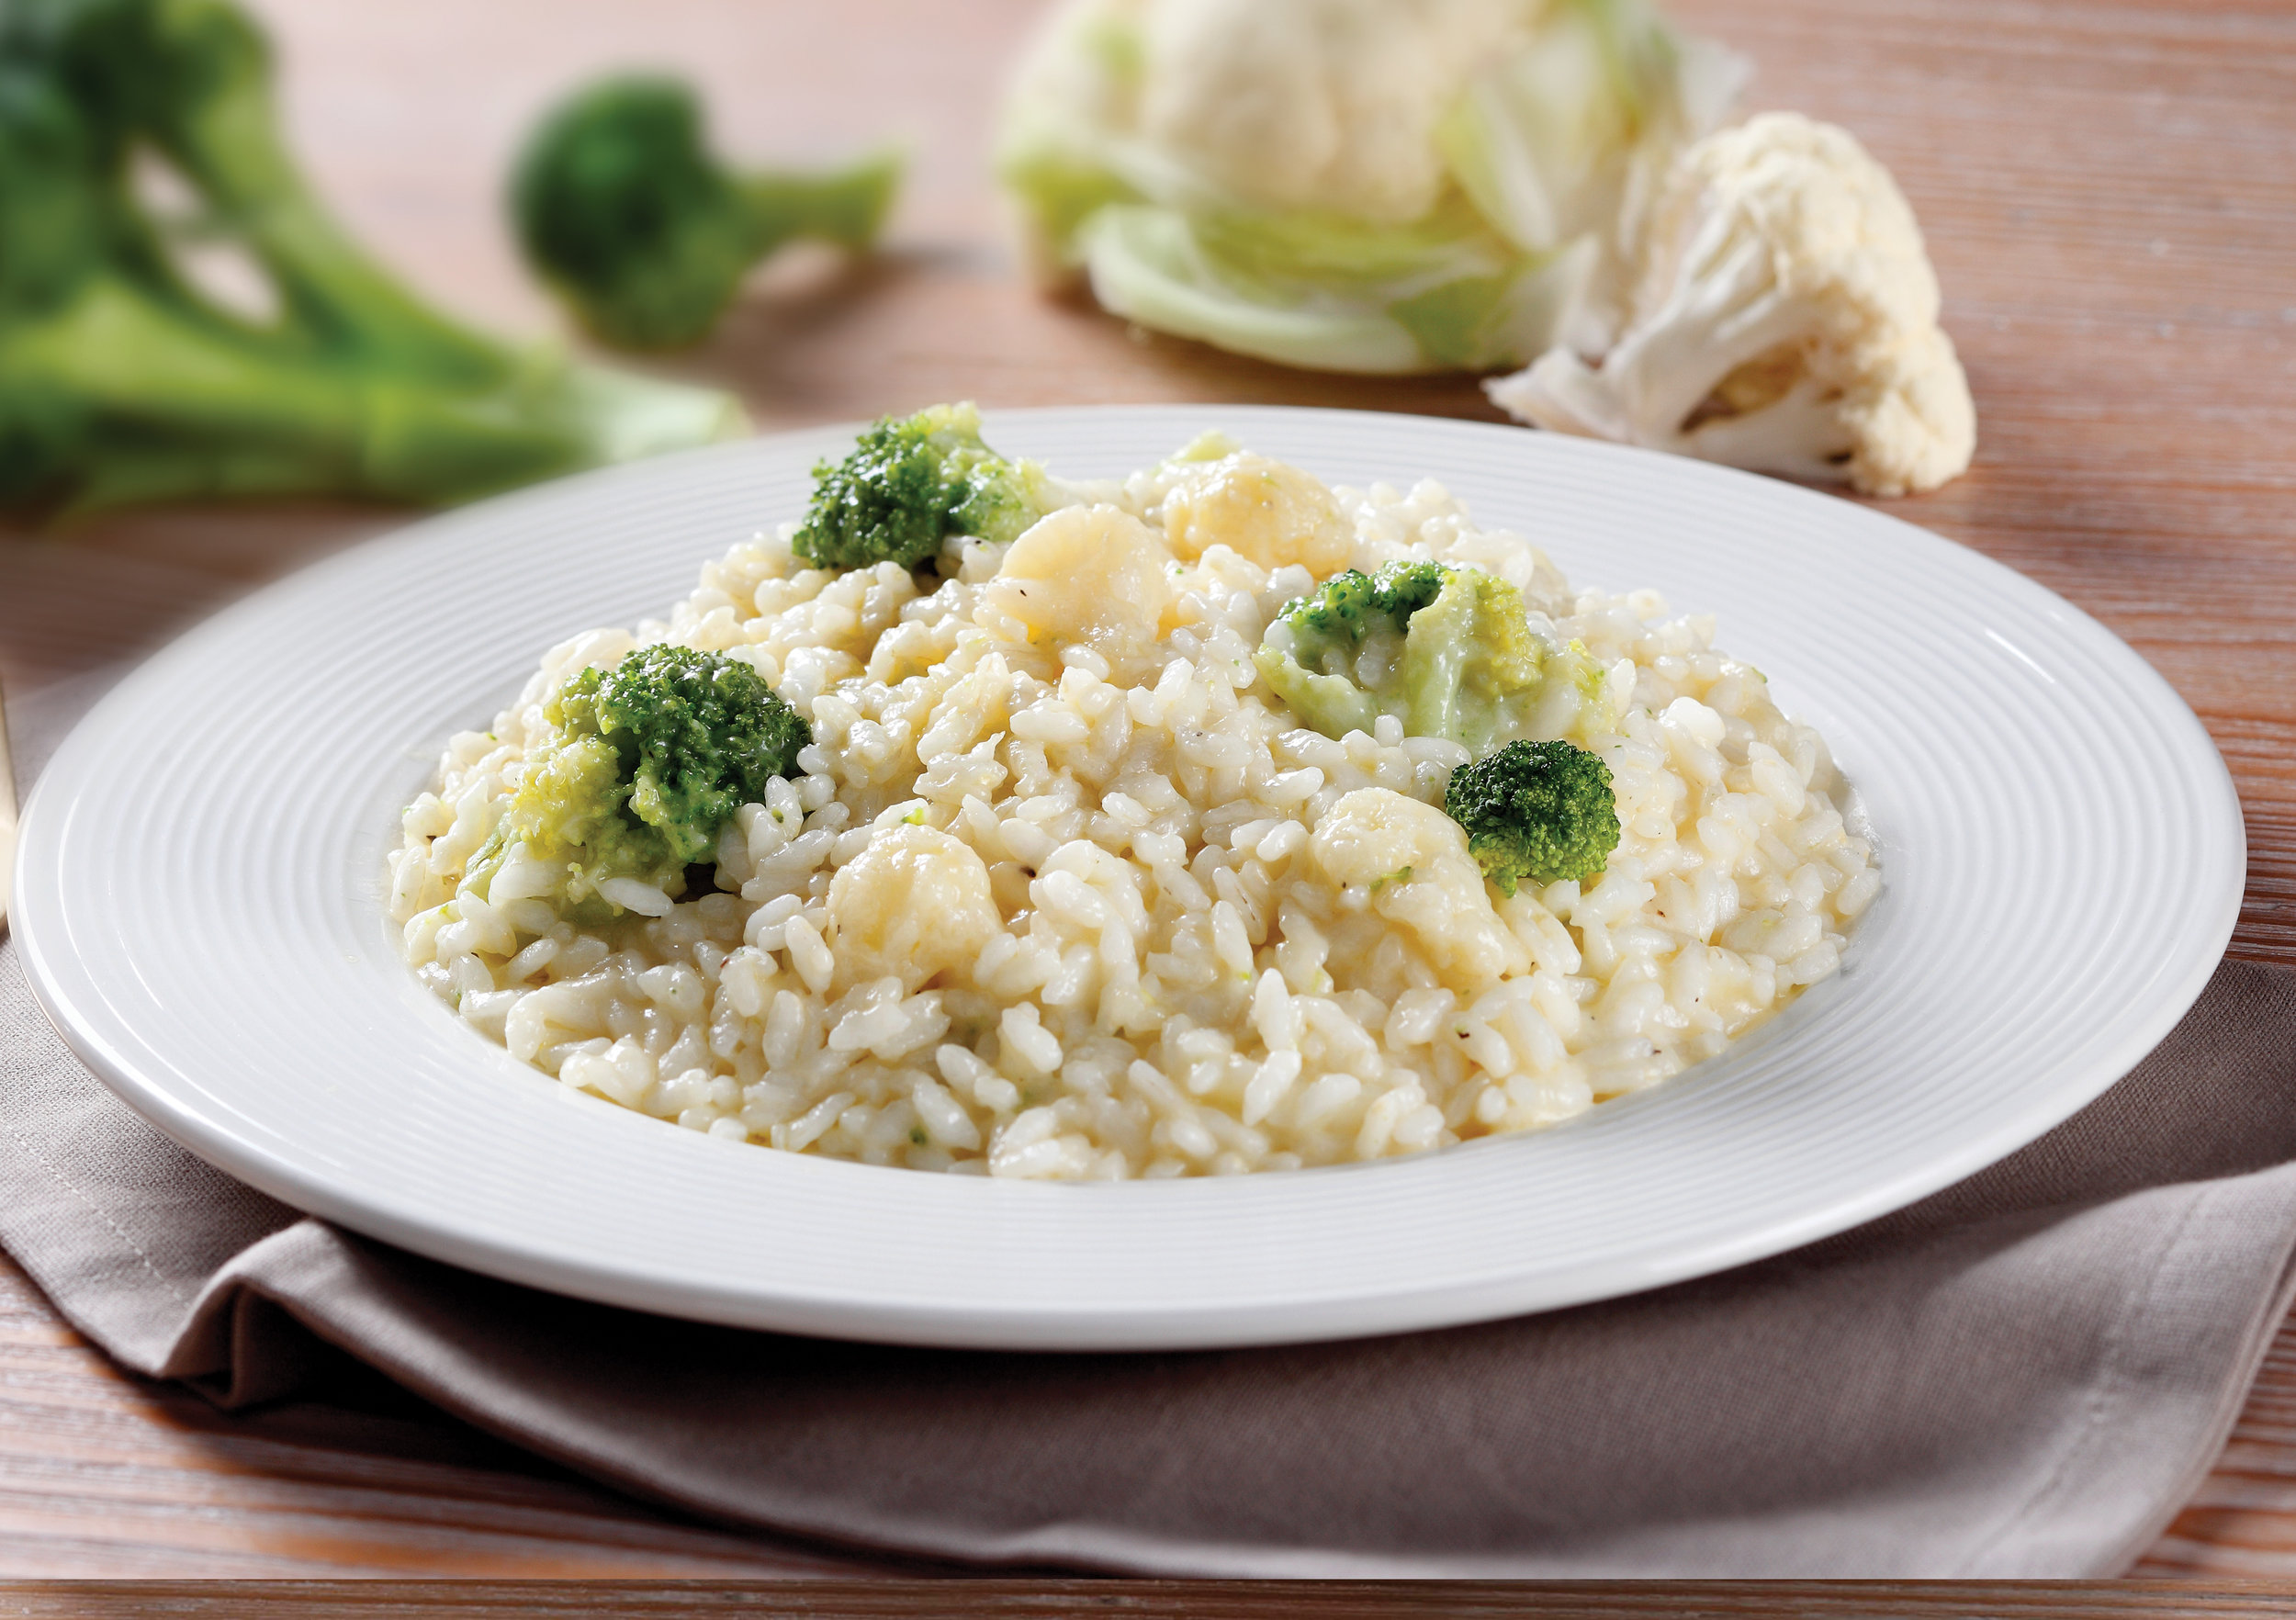 RISOTTO WITH CAULIFLOWER & BROCCOLI - This ready to cook and serve Risotto is made with our imported Carnaroli Rice and includes a rich and creamy blend of Grana Padano cheese, plus fresh chopped cauliflower and broccoli.Item 02012  //  Case Pack: 12/10.58 oz. bags  //  Case Net Wt: 7.9 lbs.  //  Product of Italy  //  MORE INFO